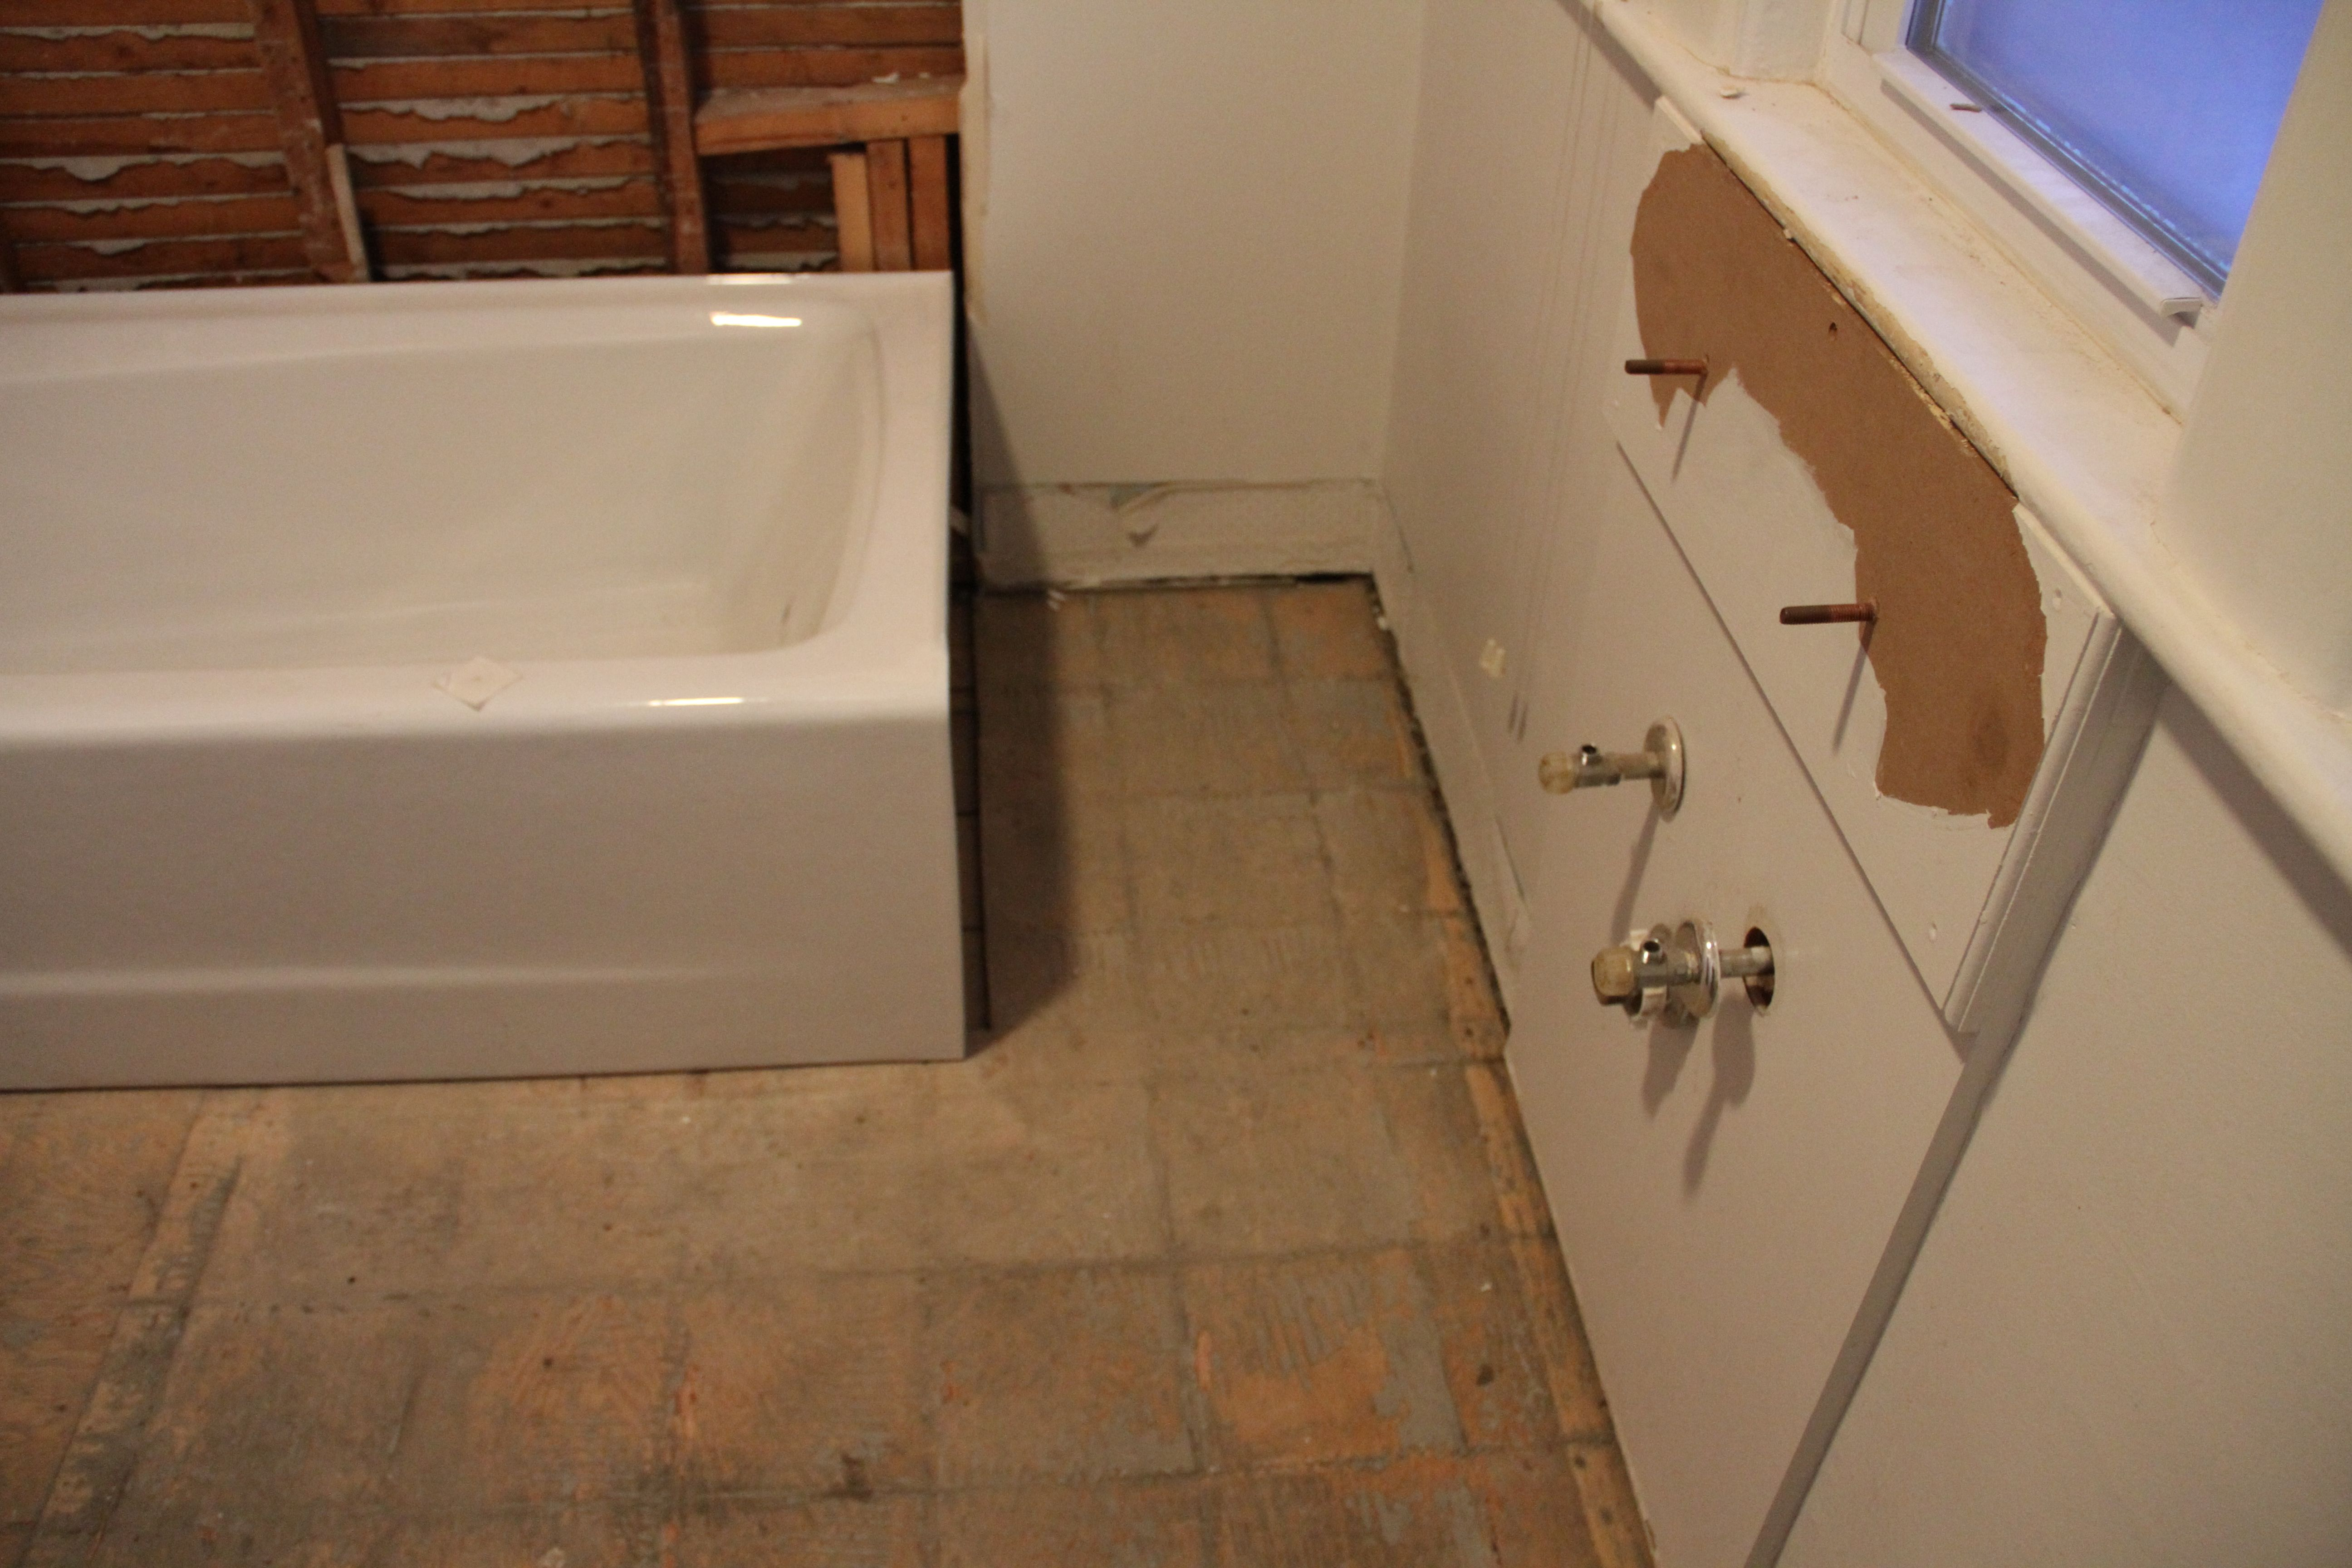 The tub will get closer to the wall when the plumber does his thing. Not much space extra to work with, but I'm (we're) gonna make it better than before.